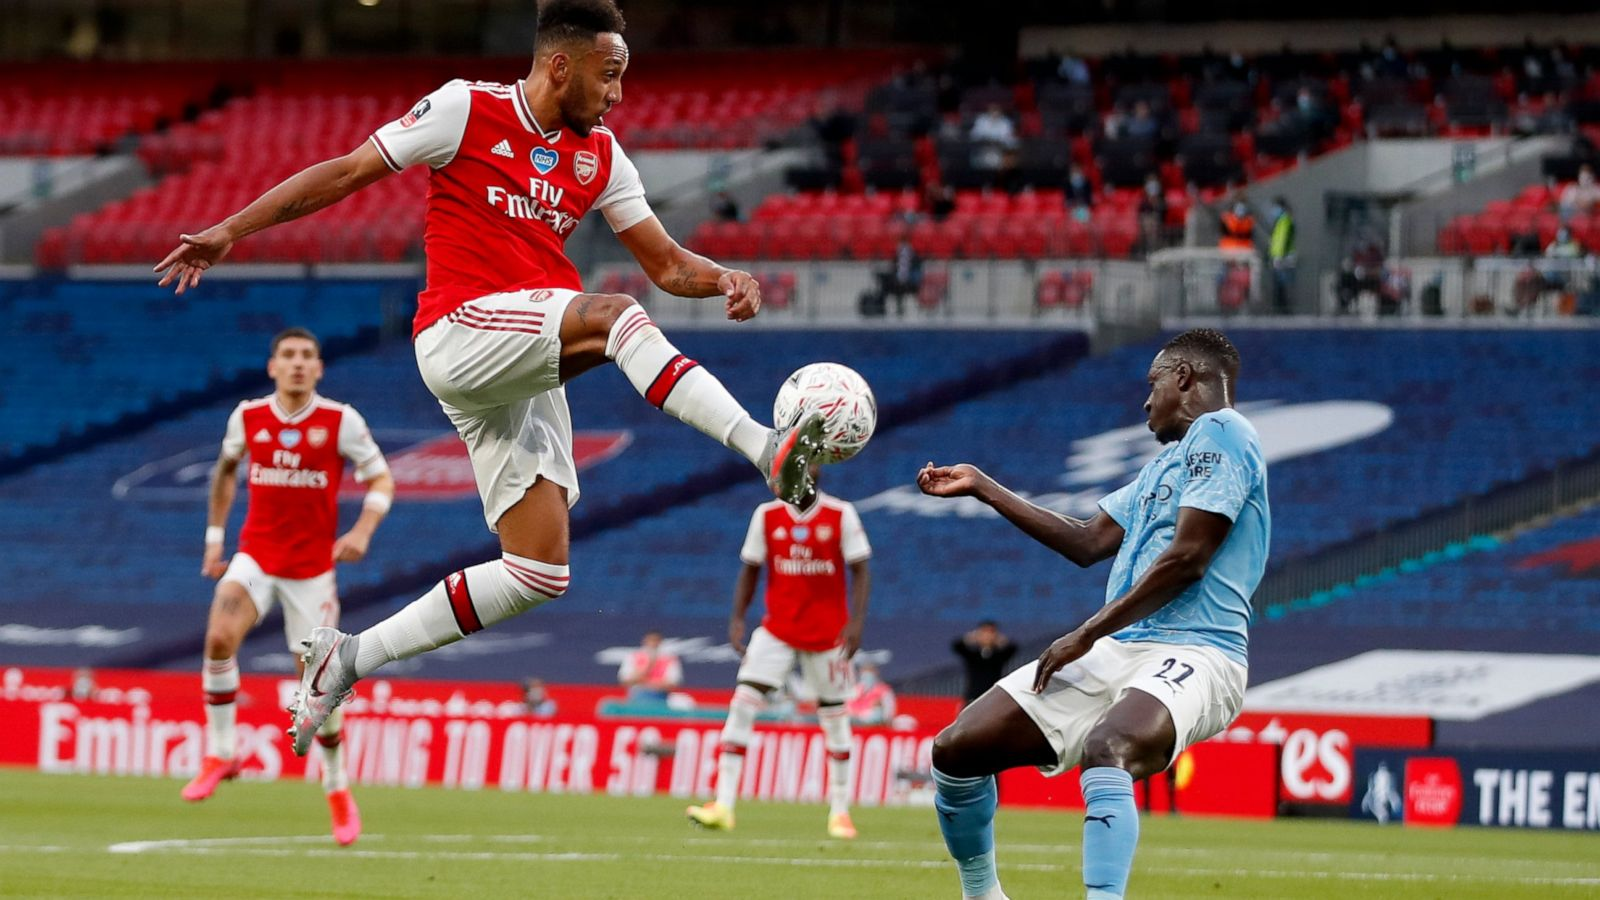 Arsenal Stuns Manchester City In F.A Cup Semis